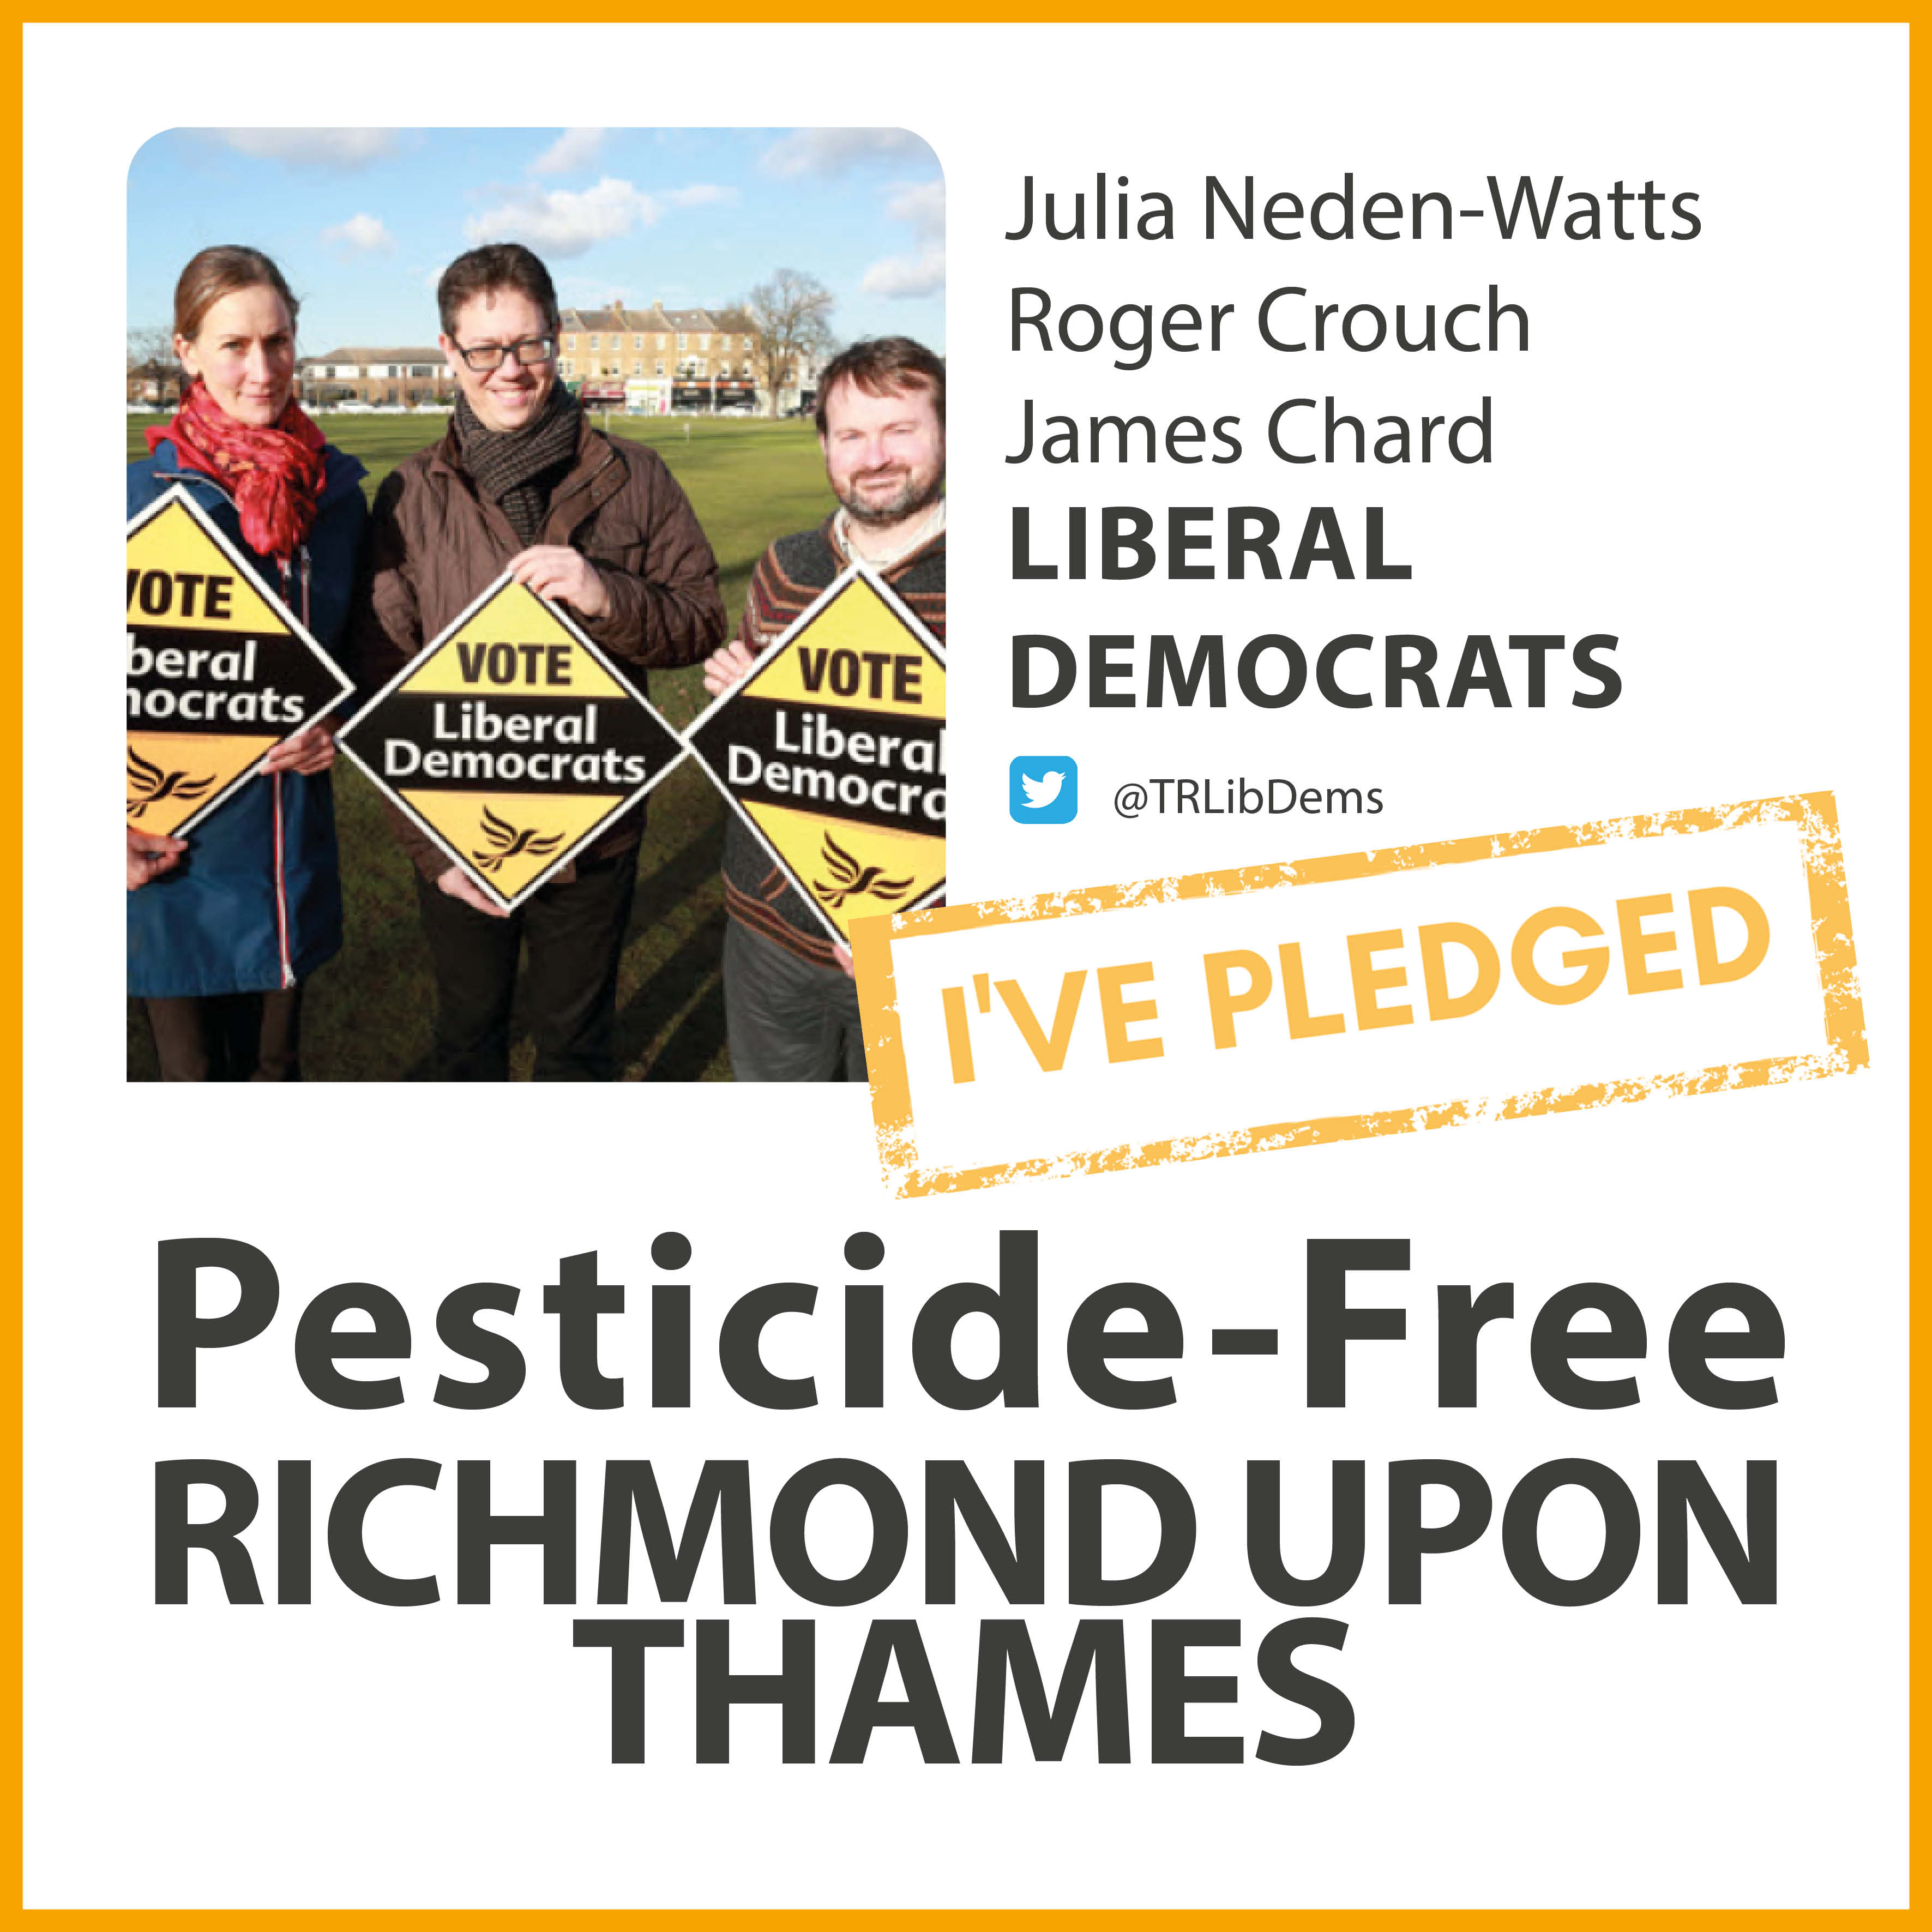 Twickenham Riverside Lib Dems have taken the pesticide-free pledge